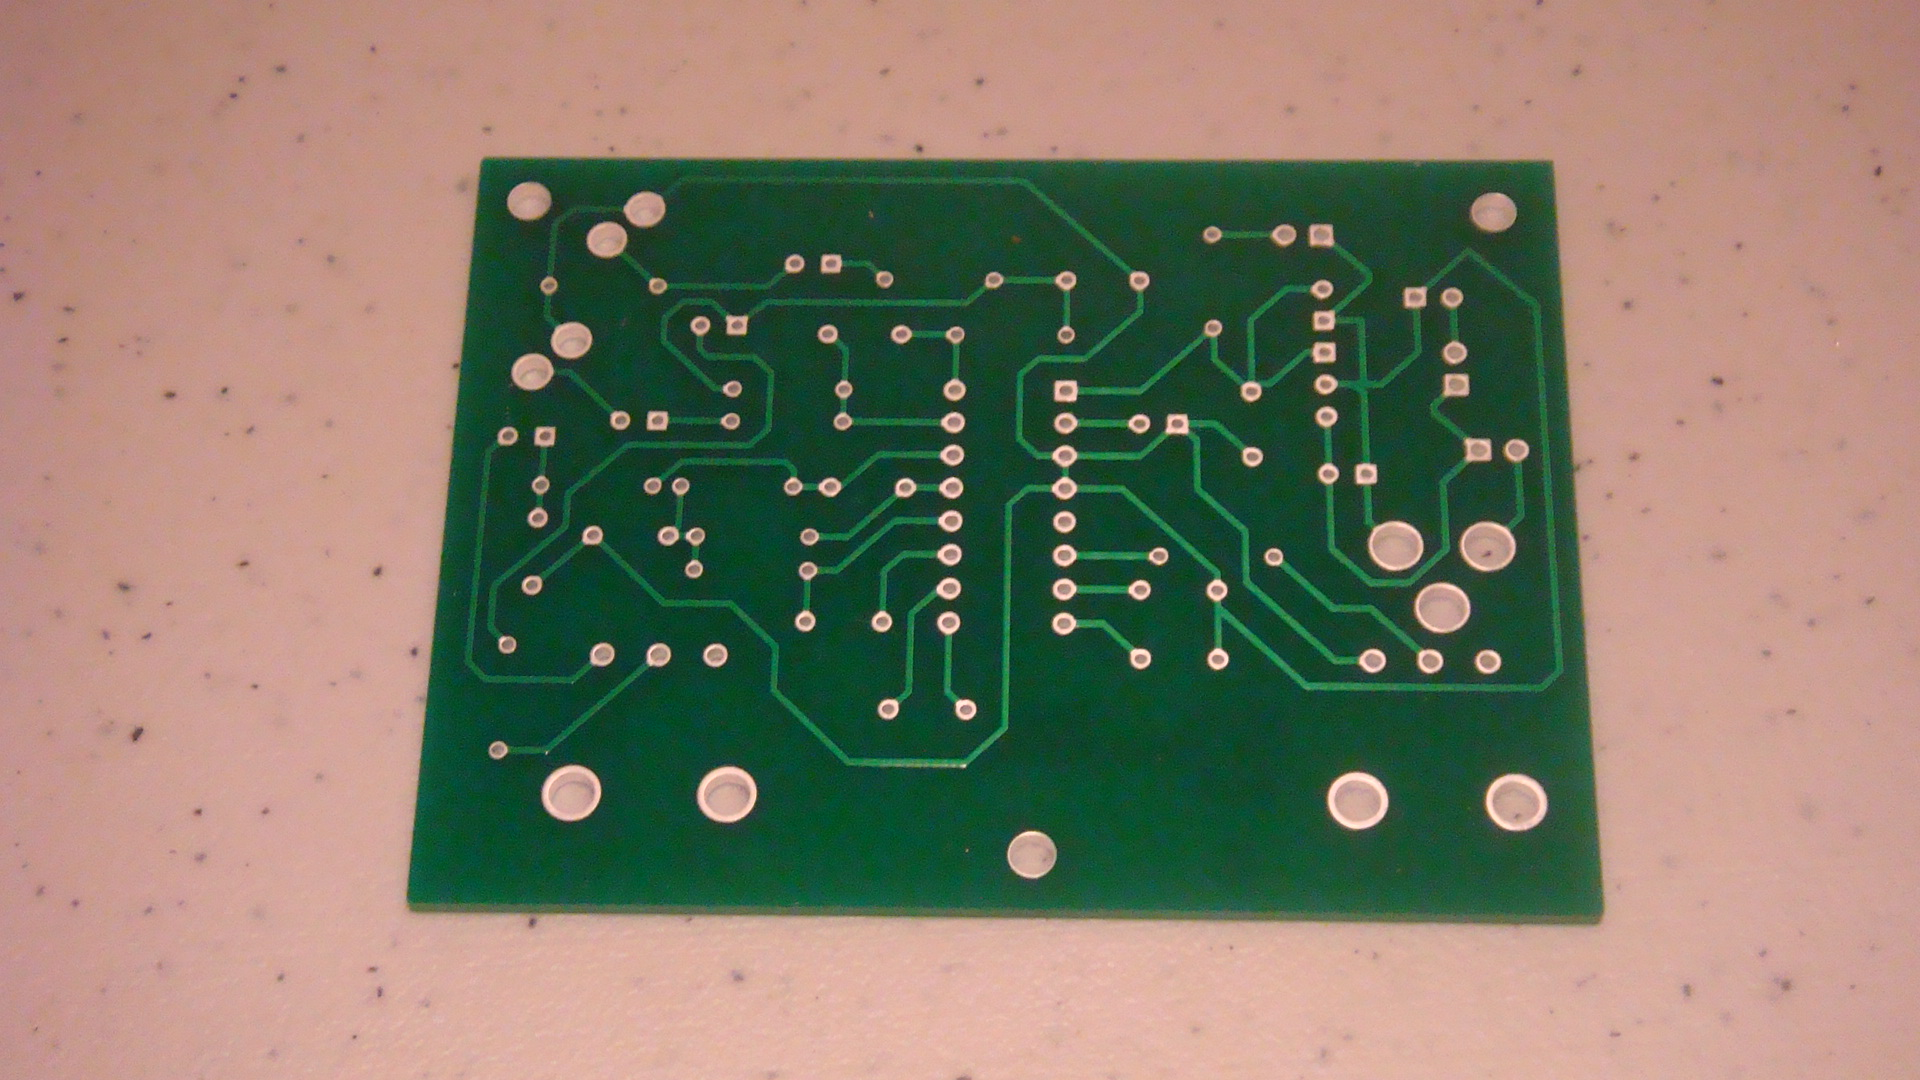 hight resolution of the bottom layer of our pcb is where we will be soldering our leads and wires